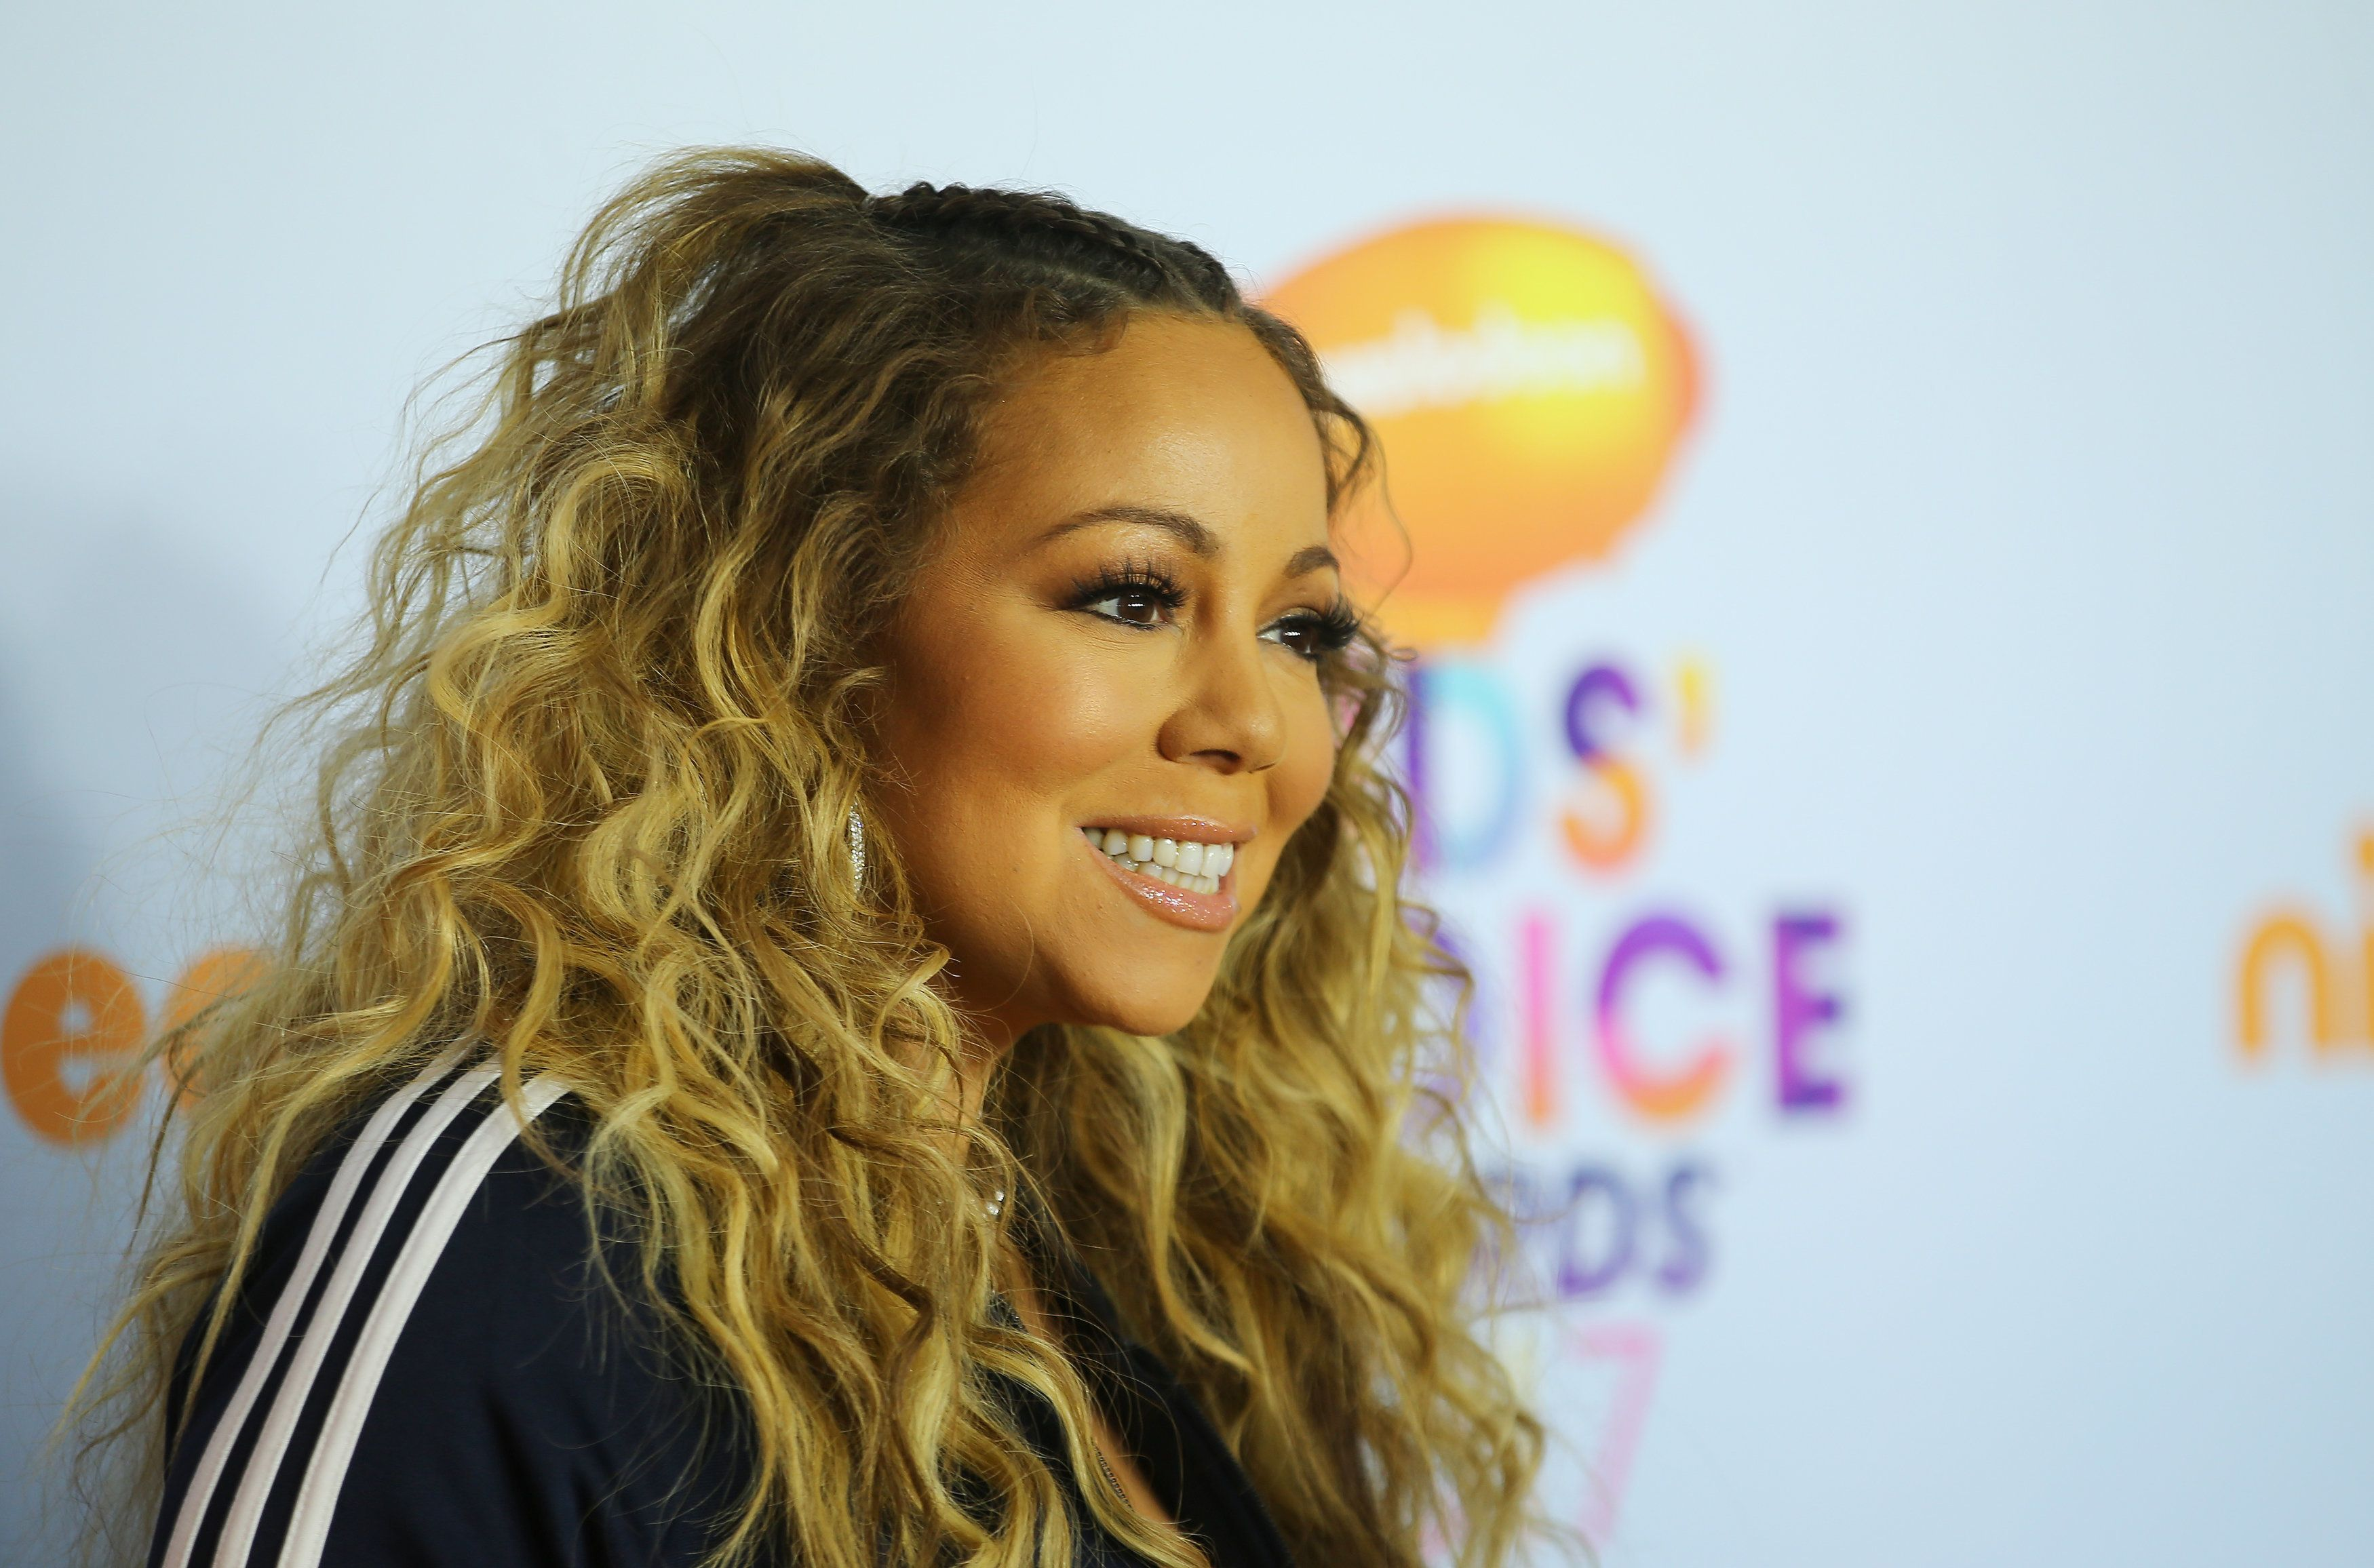 Mariah Carey's representative blasts planned lawsuit as 'frivolous and baseless'